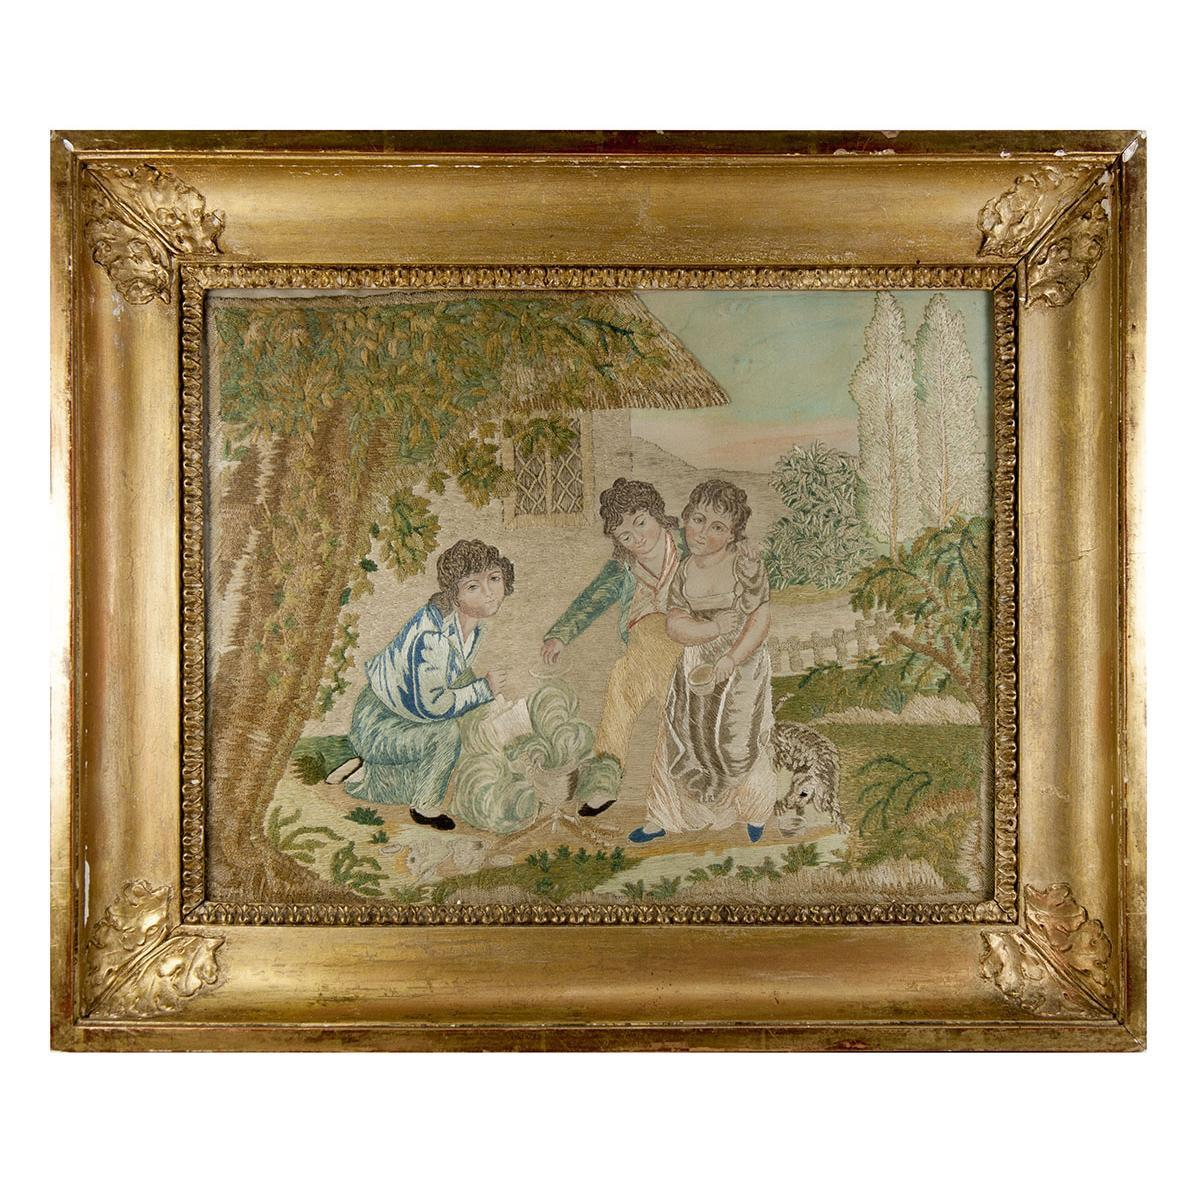 RARE Antique c.1816 French Silk Embroidery Needlework Sampler, Chenille, Empire Frame #2